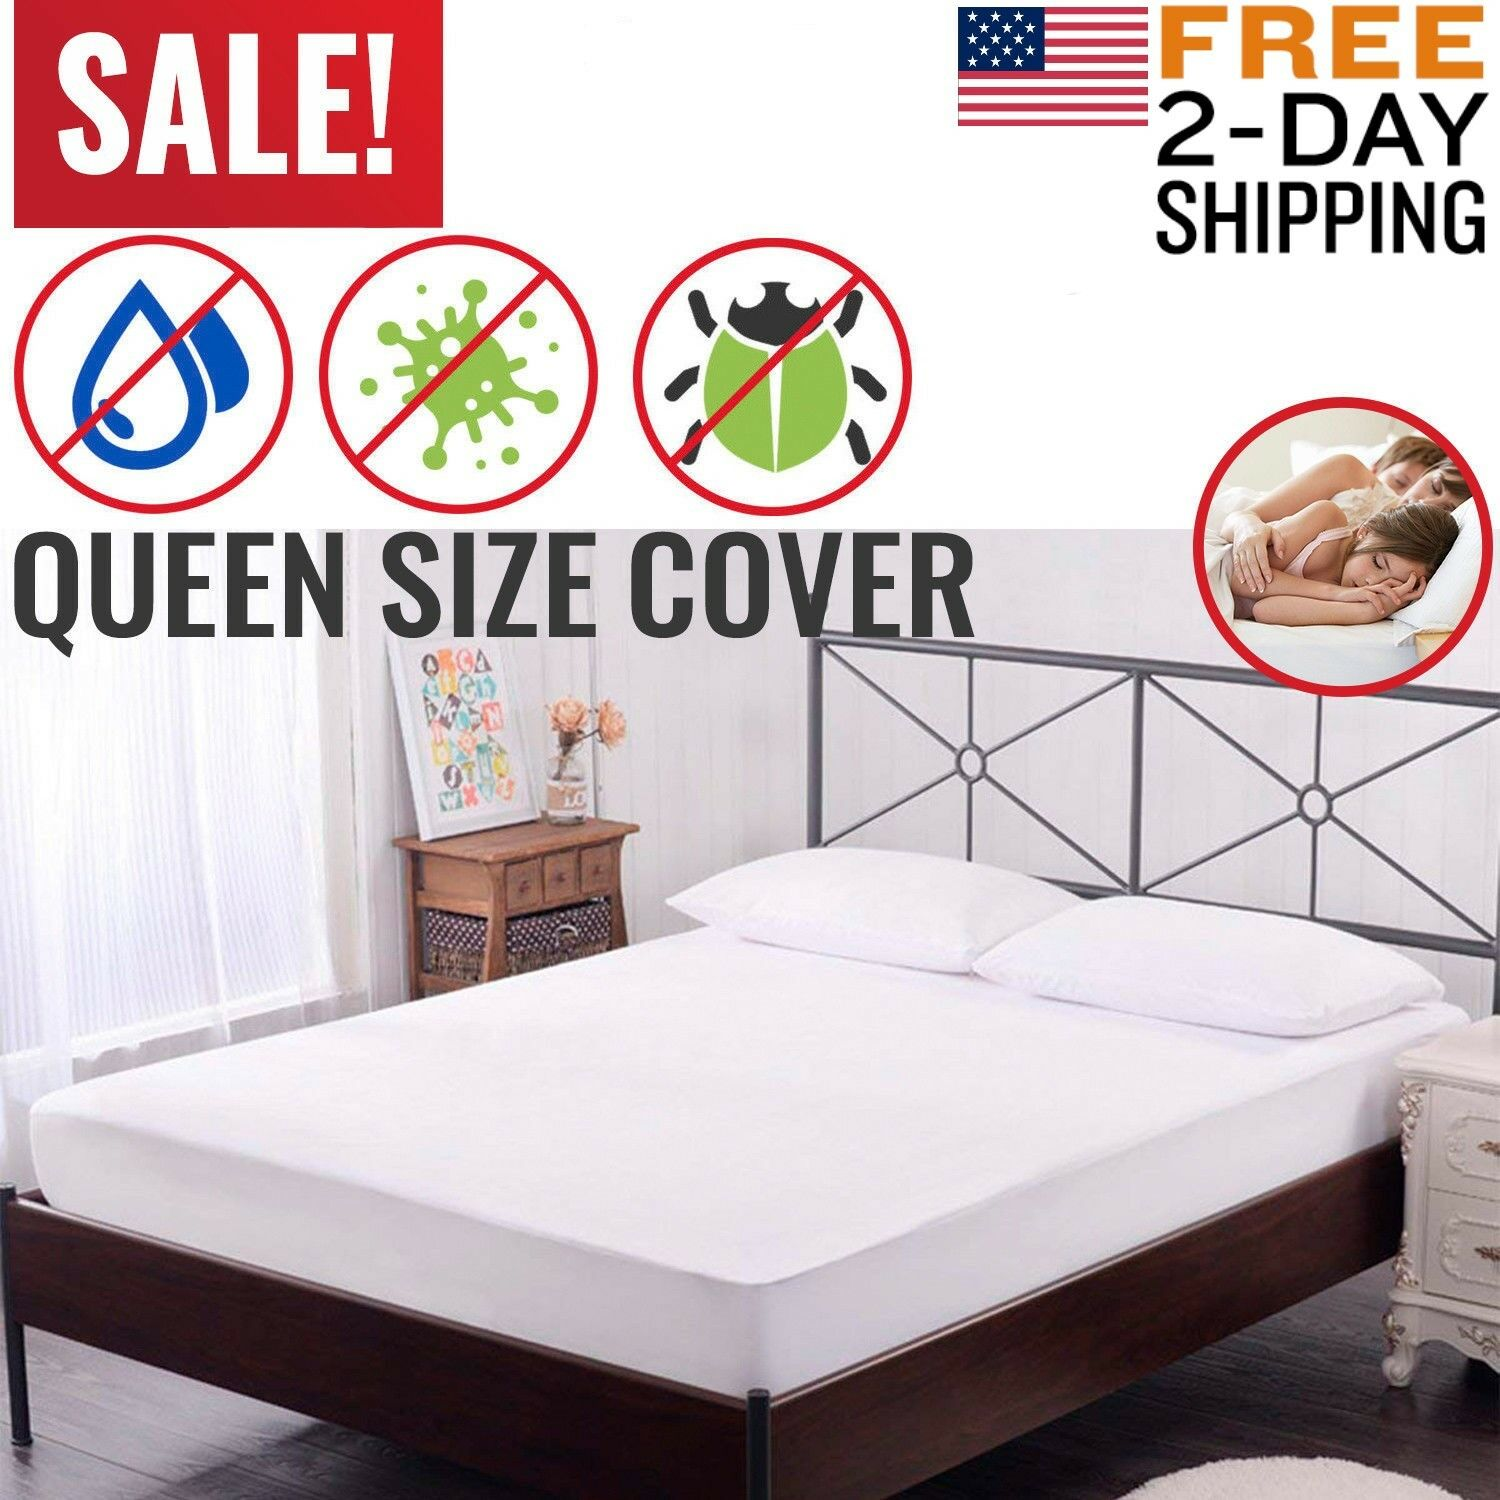 Mattress Cover Protector Waterproof Pad Queen Size Bed Hypoa